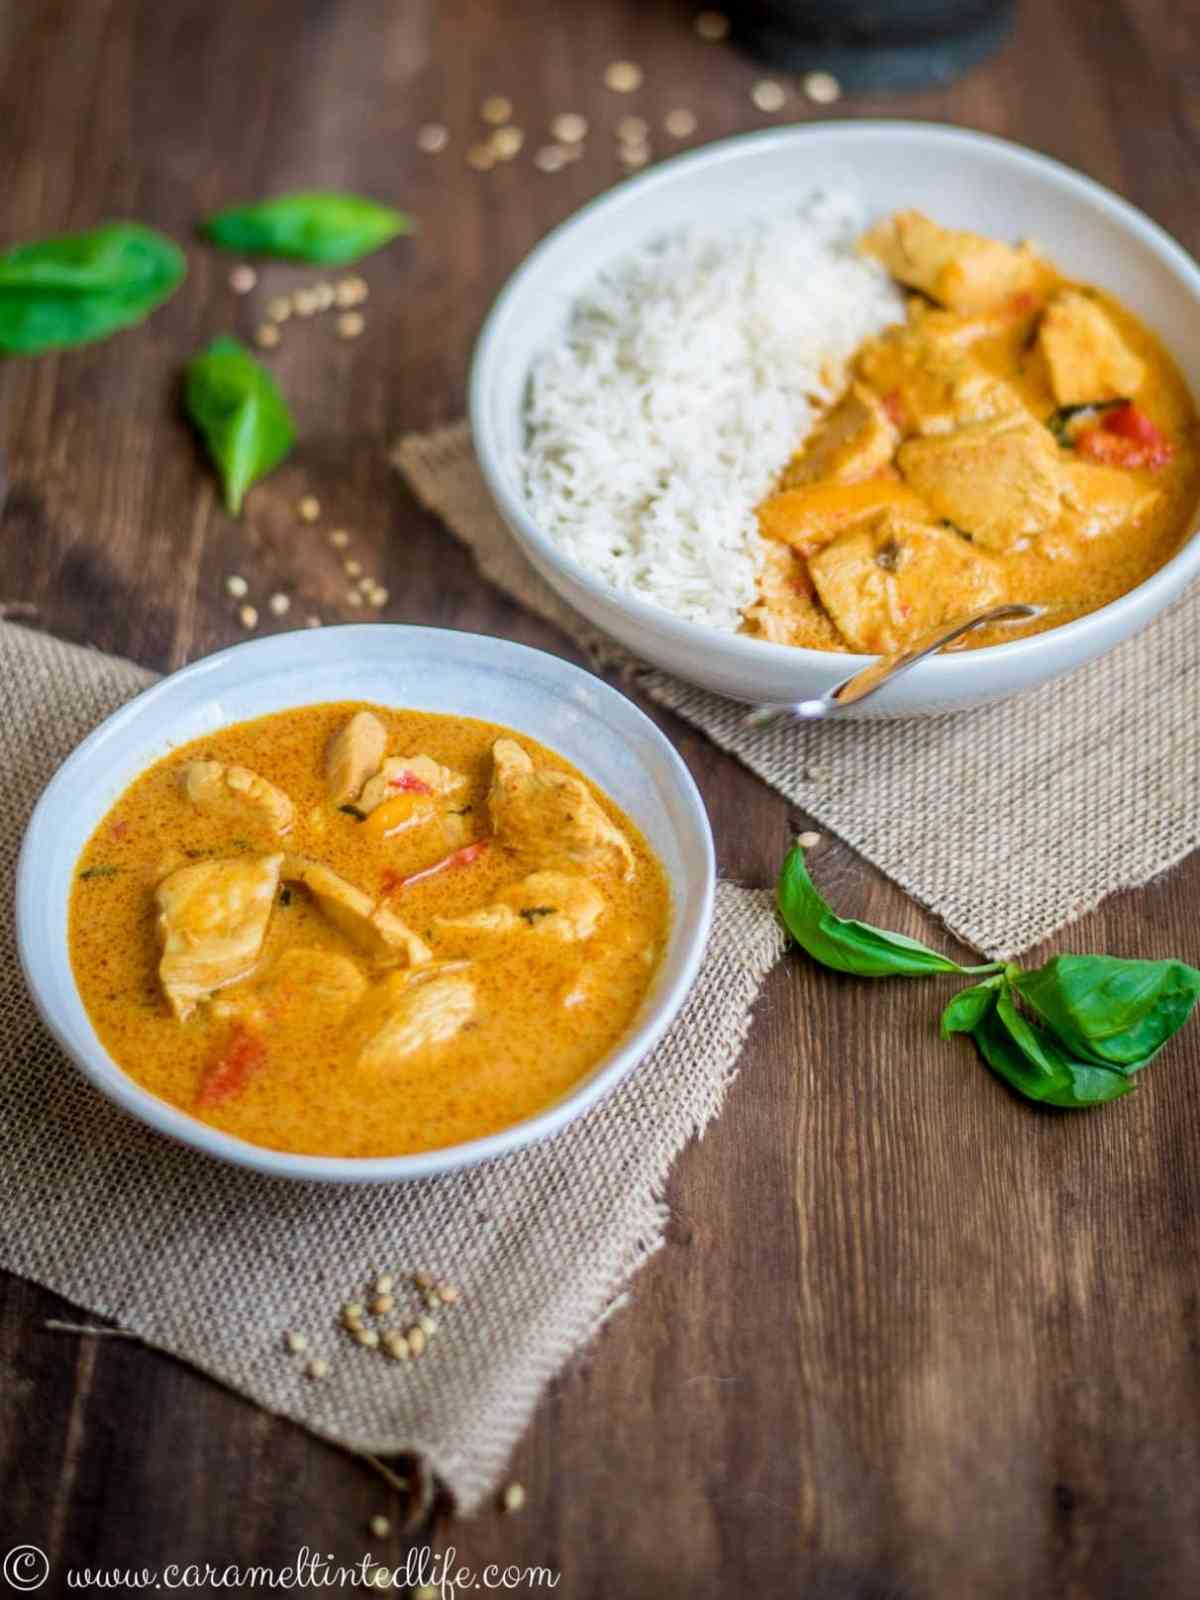 Thai Chicken Curry and Rice served in two bowls